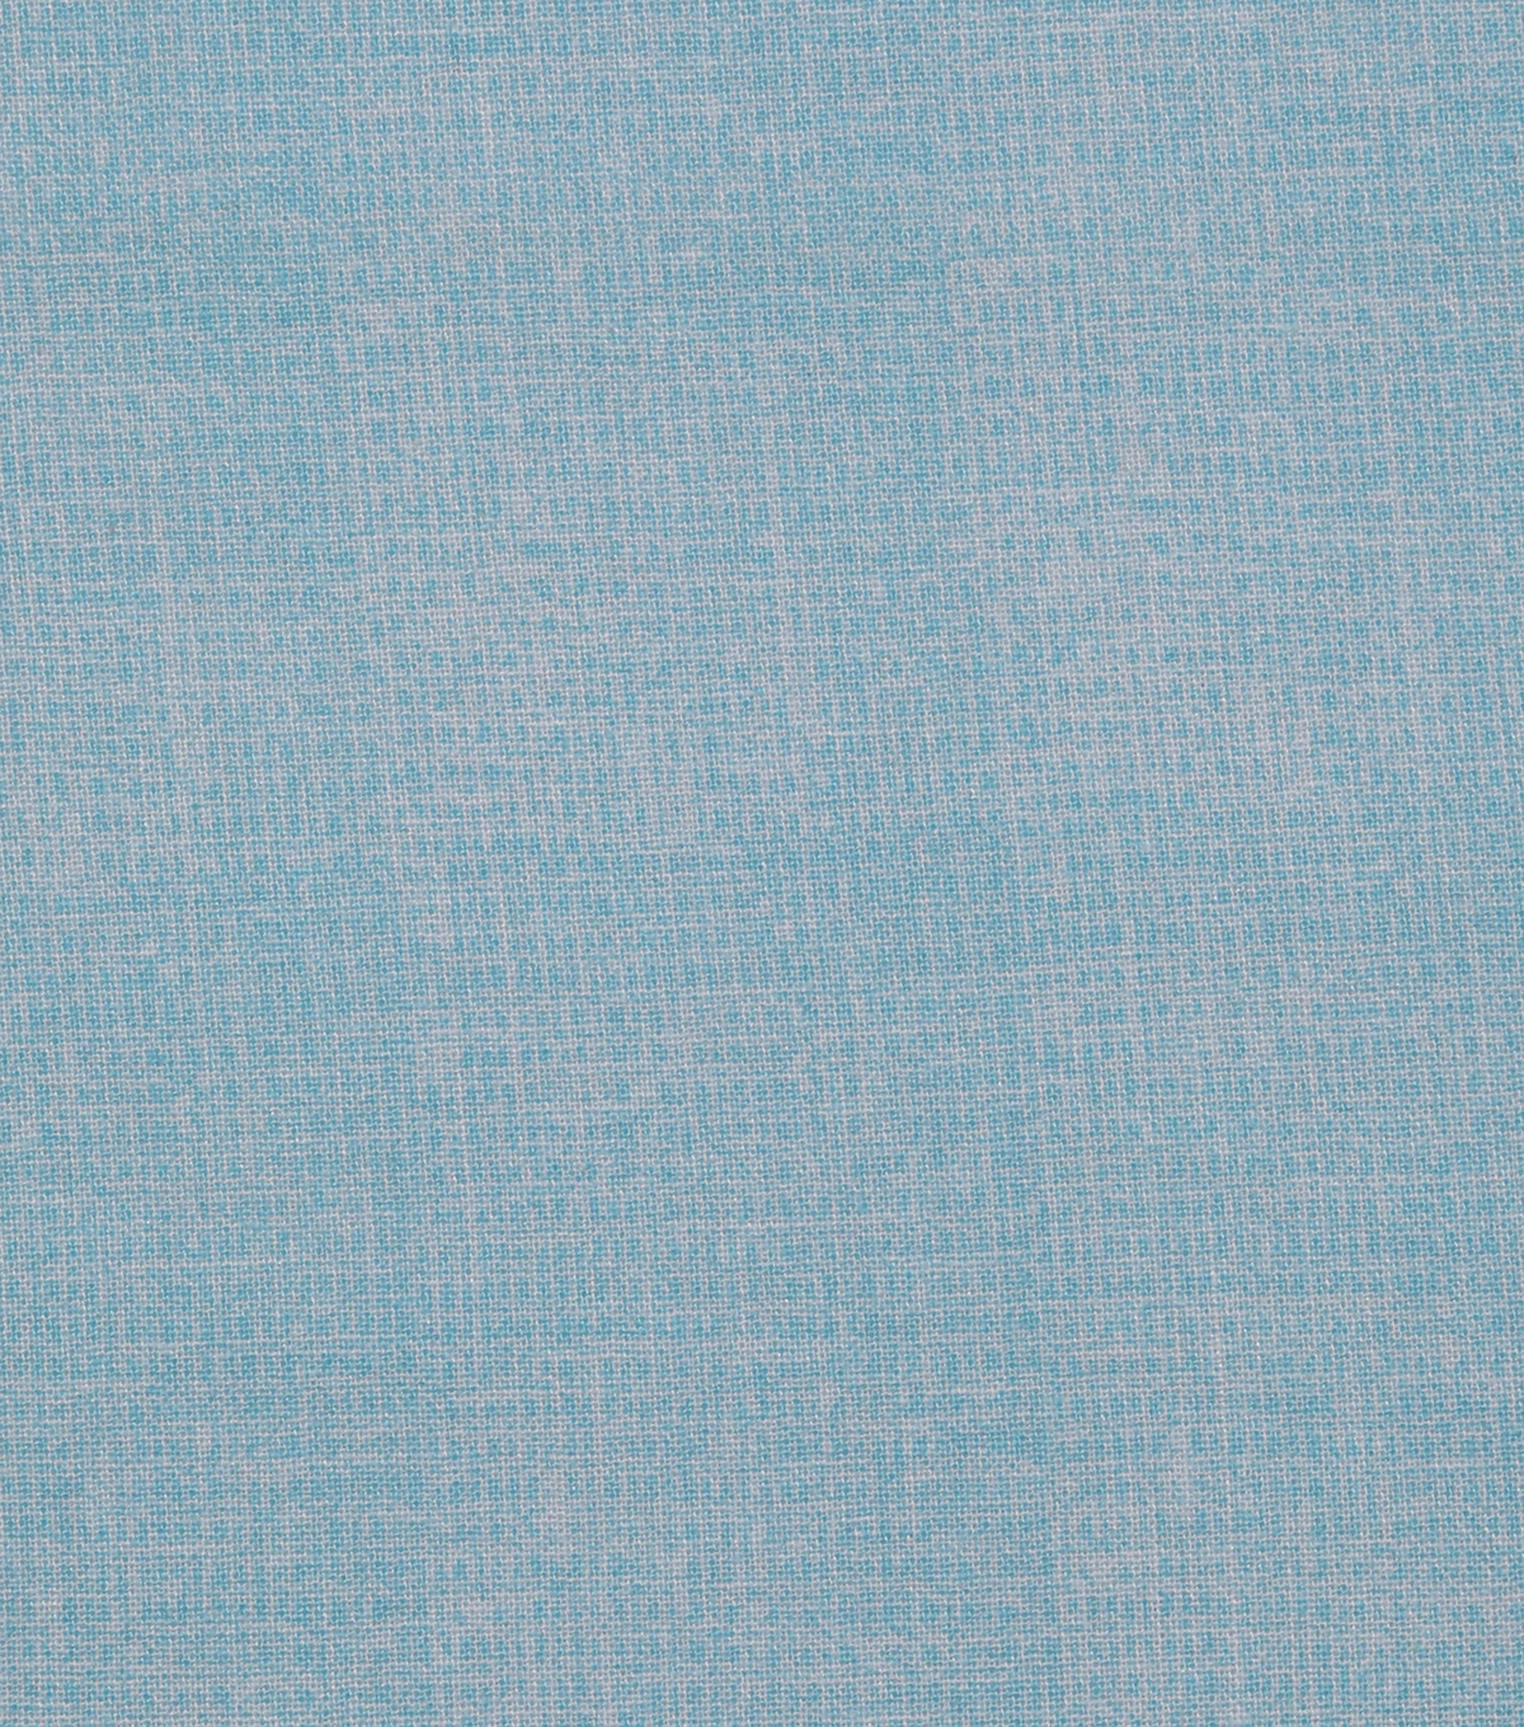 Keepsake Calico Cotton Fabric 43\u0027\u0027-Light Blue Burlap Texture